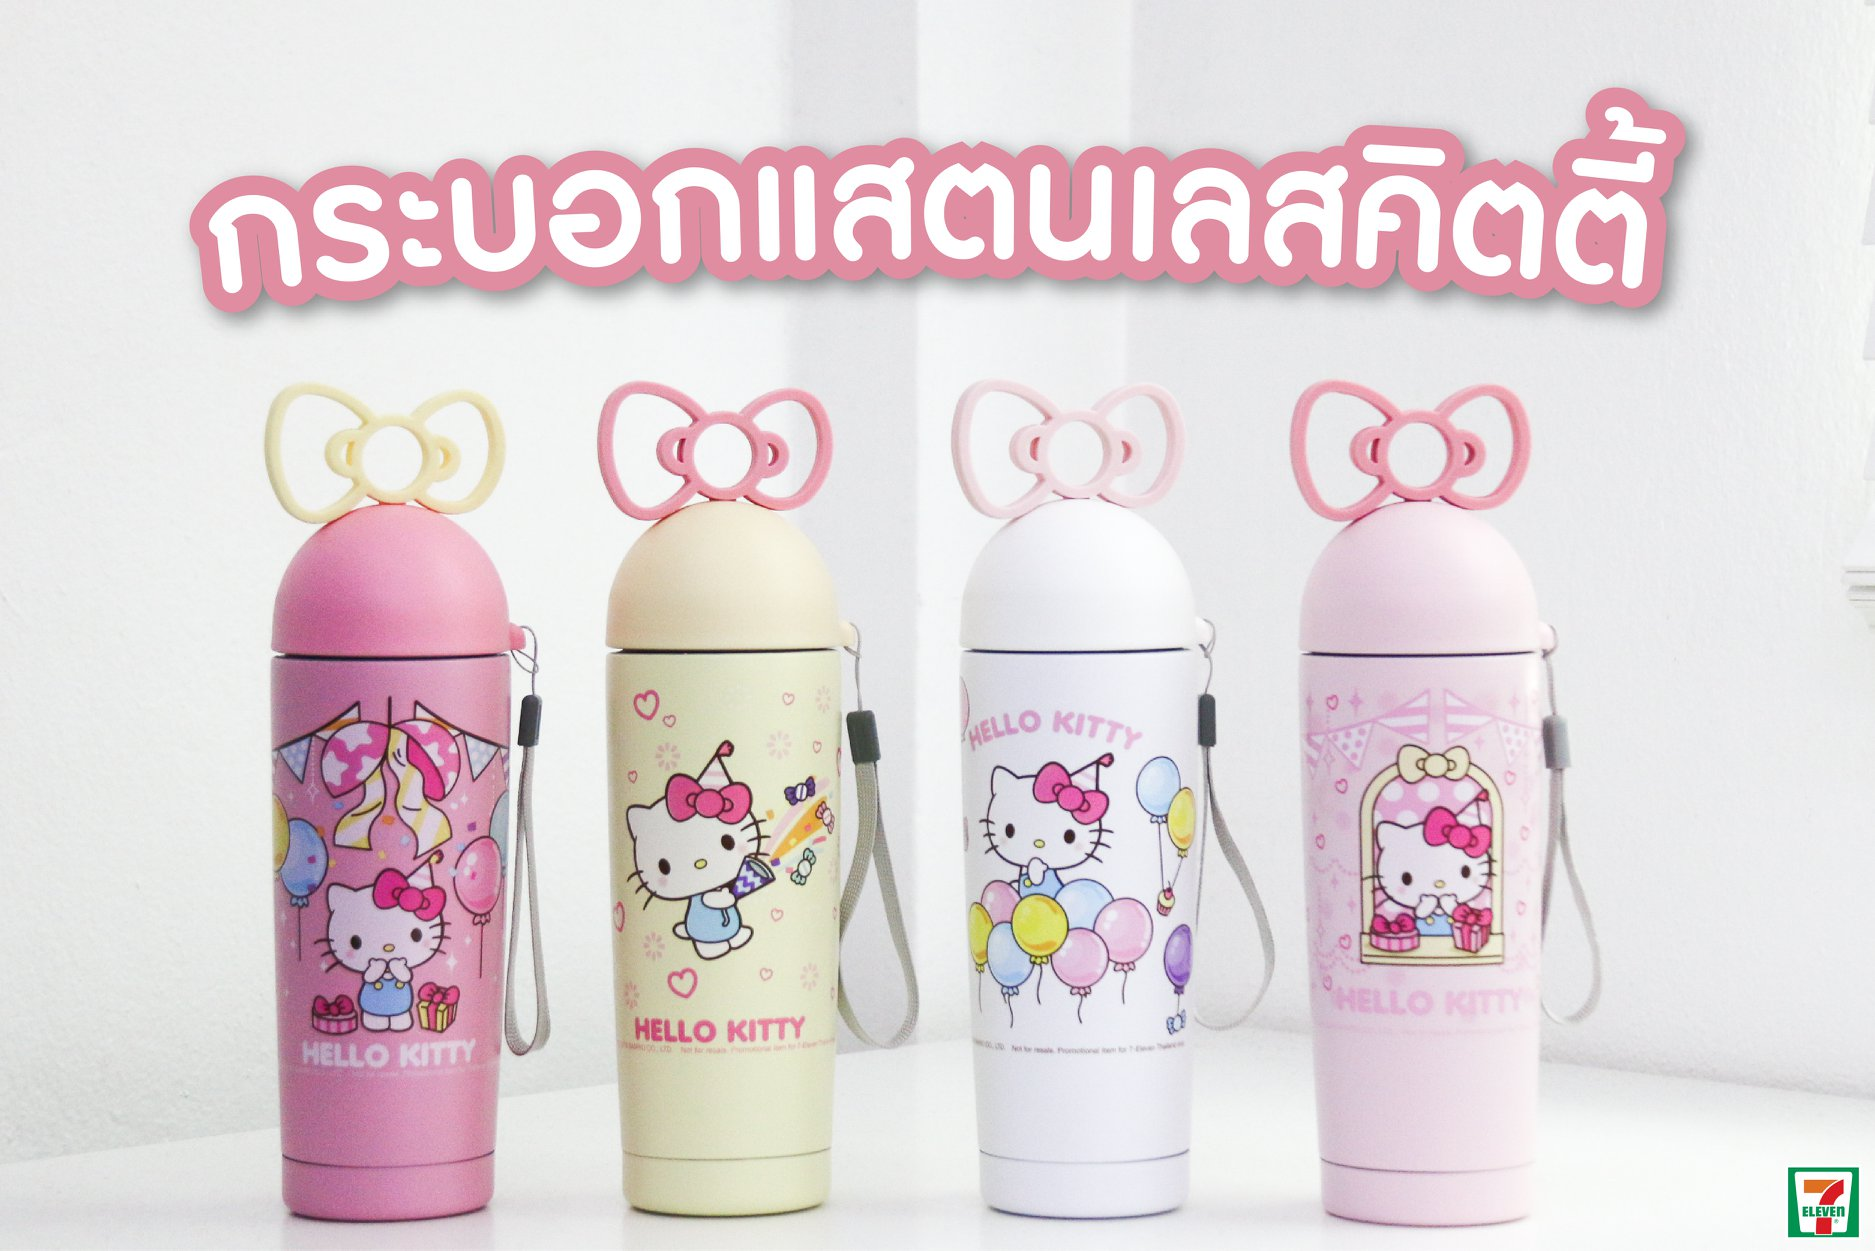 7-Eleven Thailand Hello Kitty Flasks